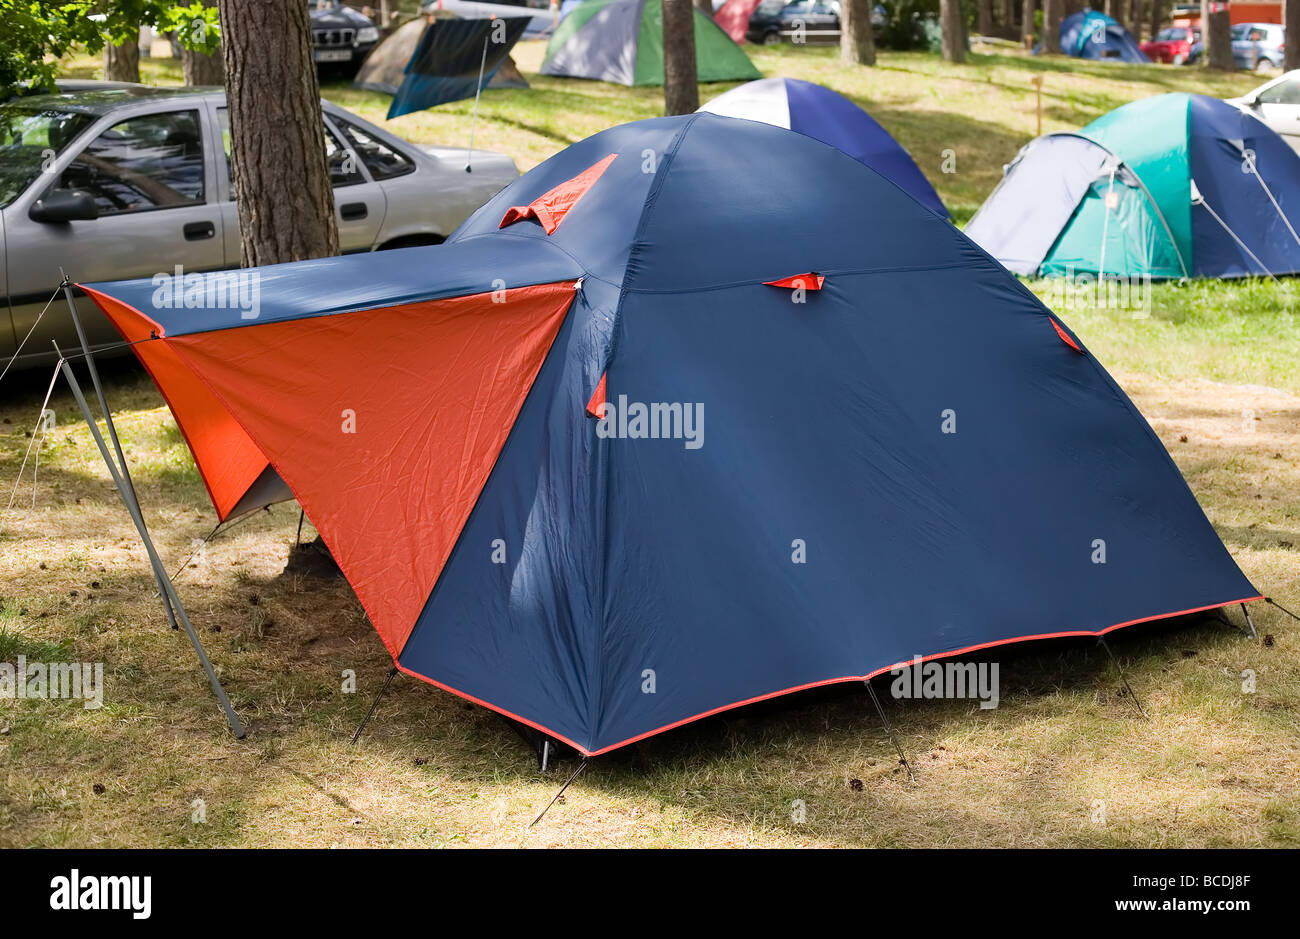 Blue tent with red entrance - Stock Image